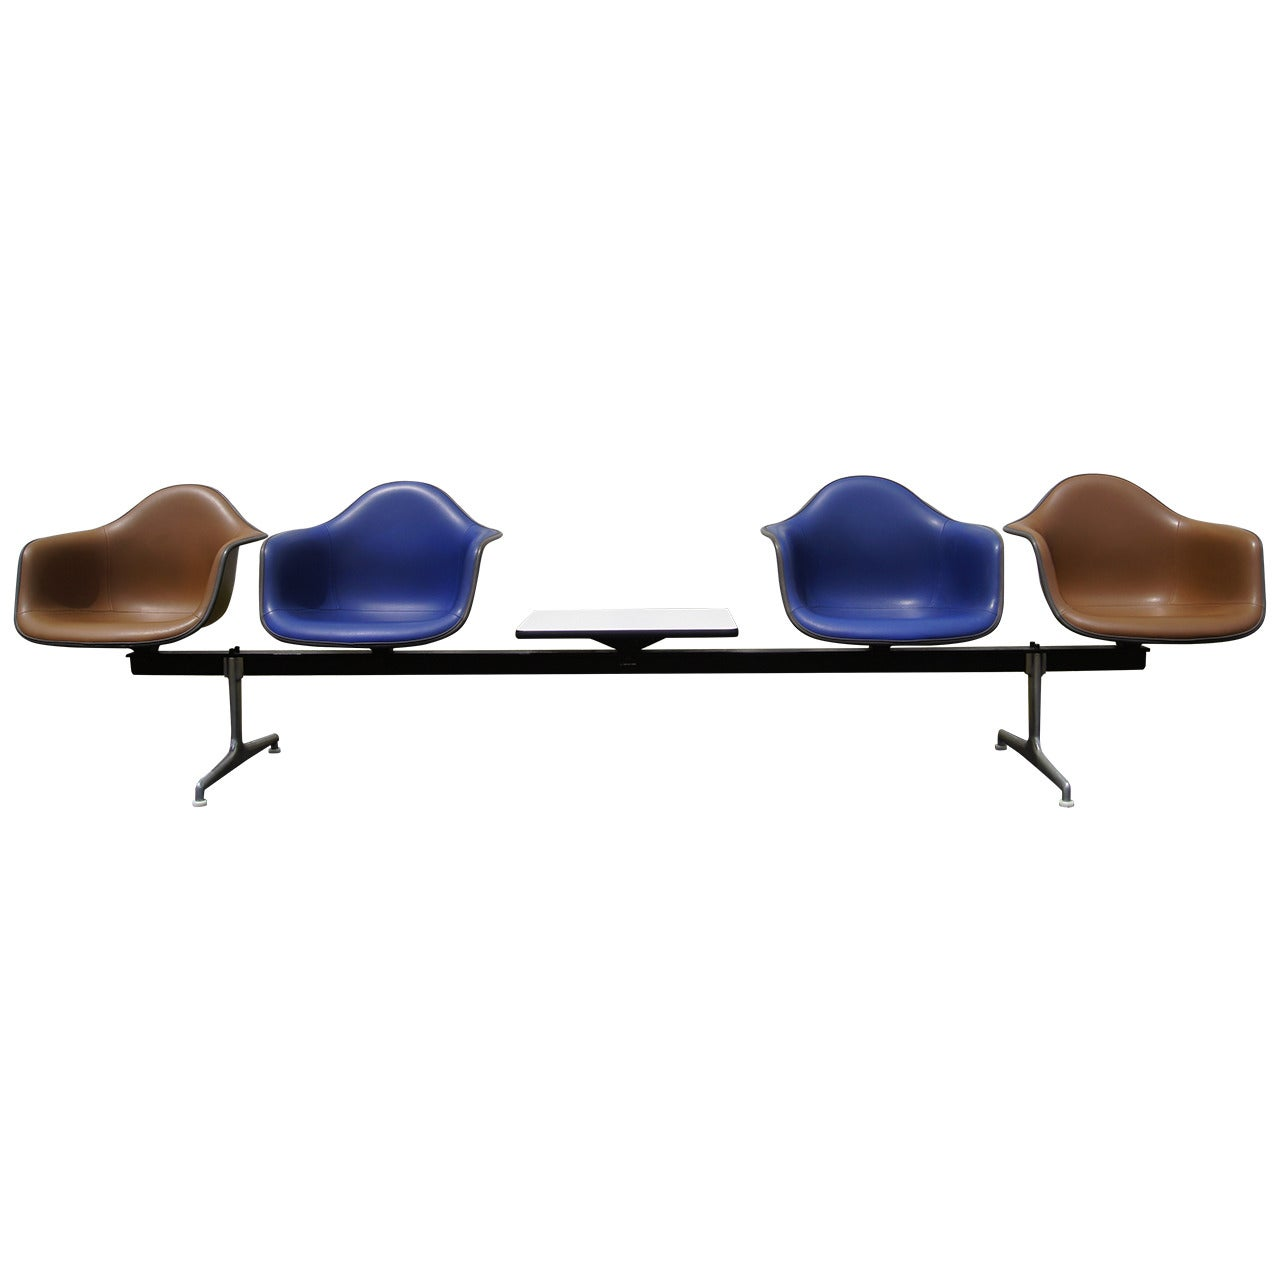 Tandem Four-Shell Seating with Table by Charles and Ray Eames for Herman Miller